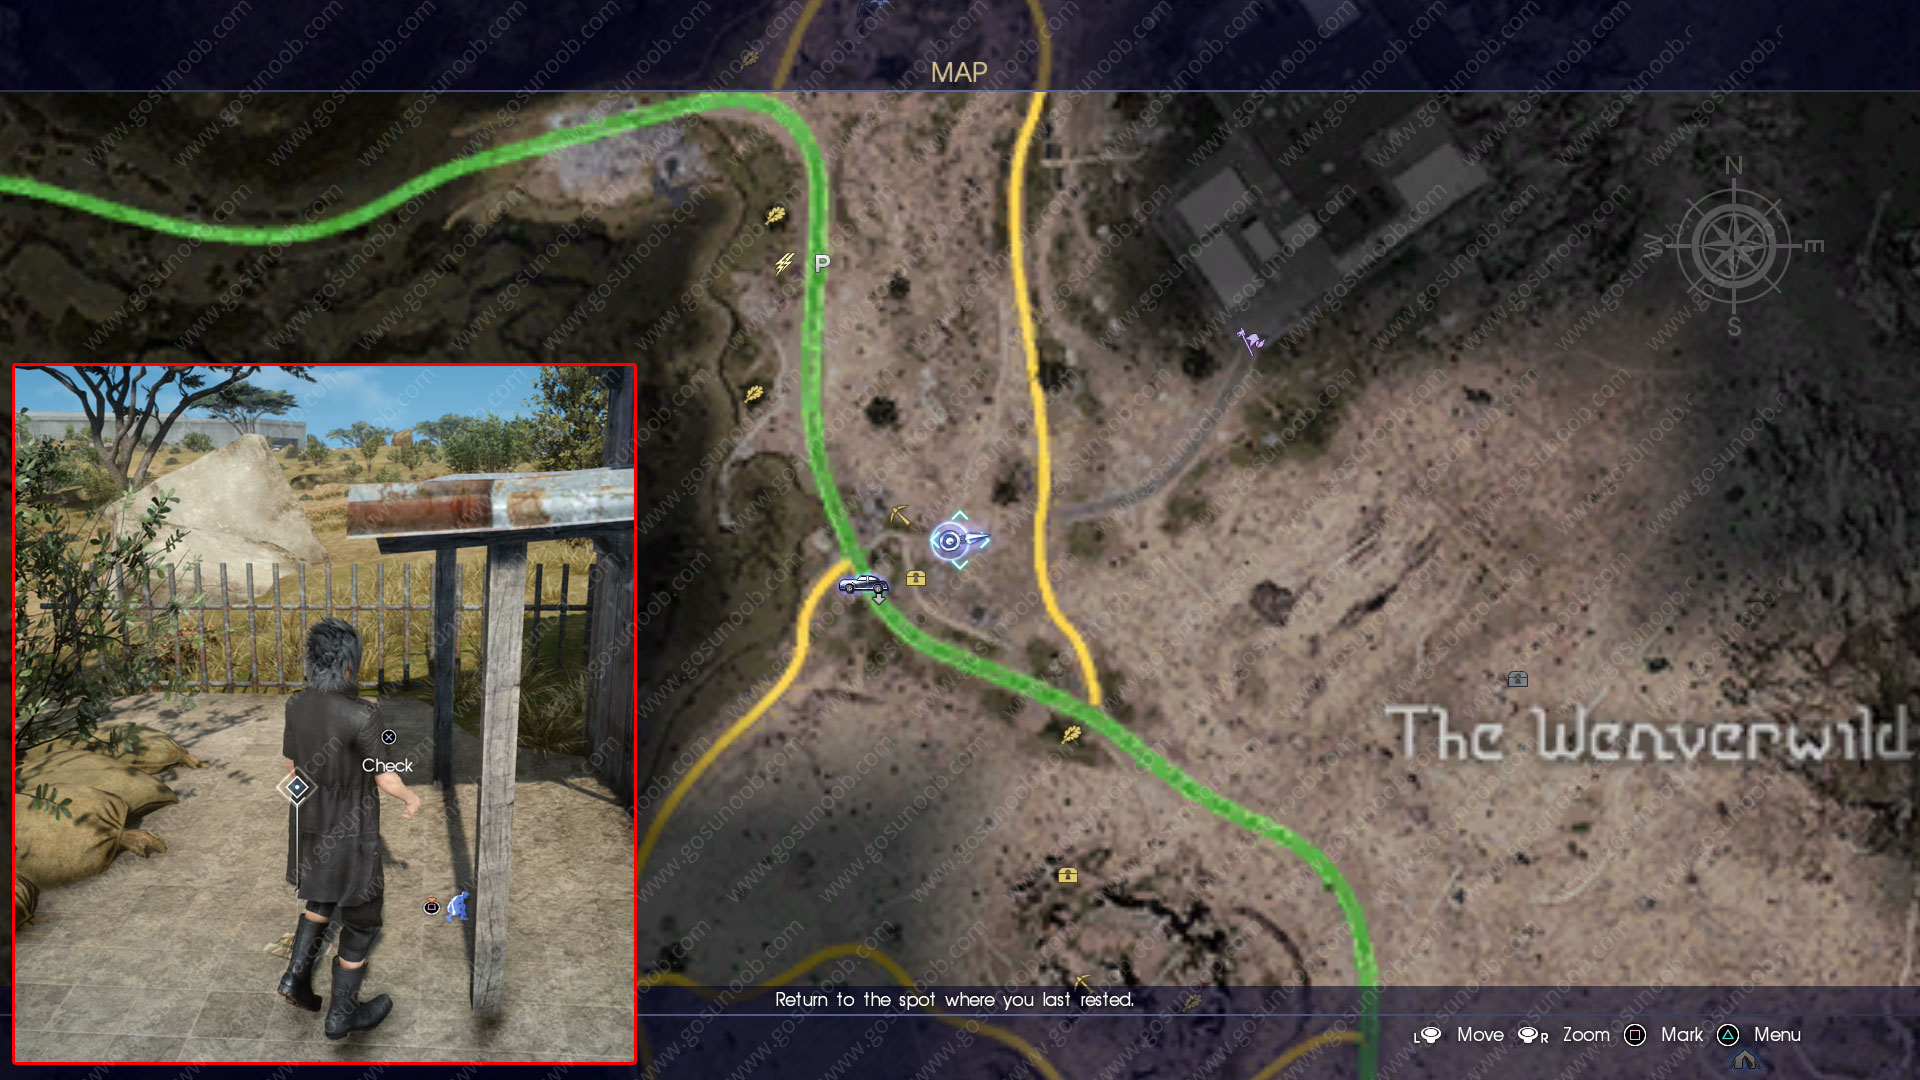 ff15-scraps-of-mystery-iii-mystery-map-location